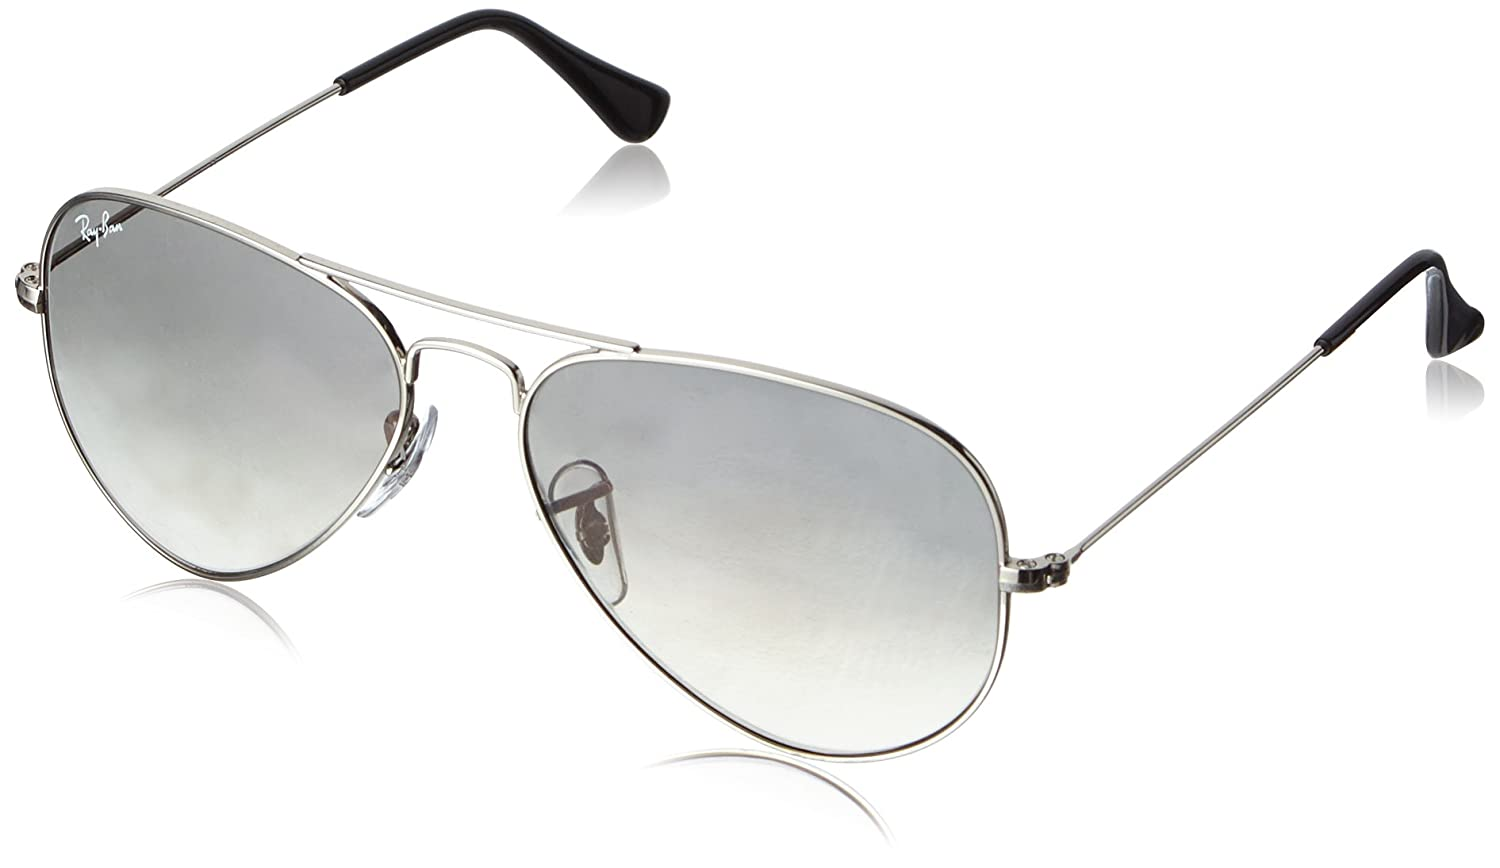 best price on ray ban aviator sunglasses  Amazon.com: Ray-Ban 0RB3025 Aviator Metal Non-Polarized Sunglasses ...